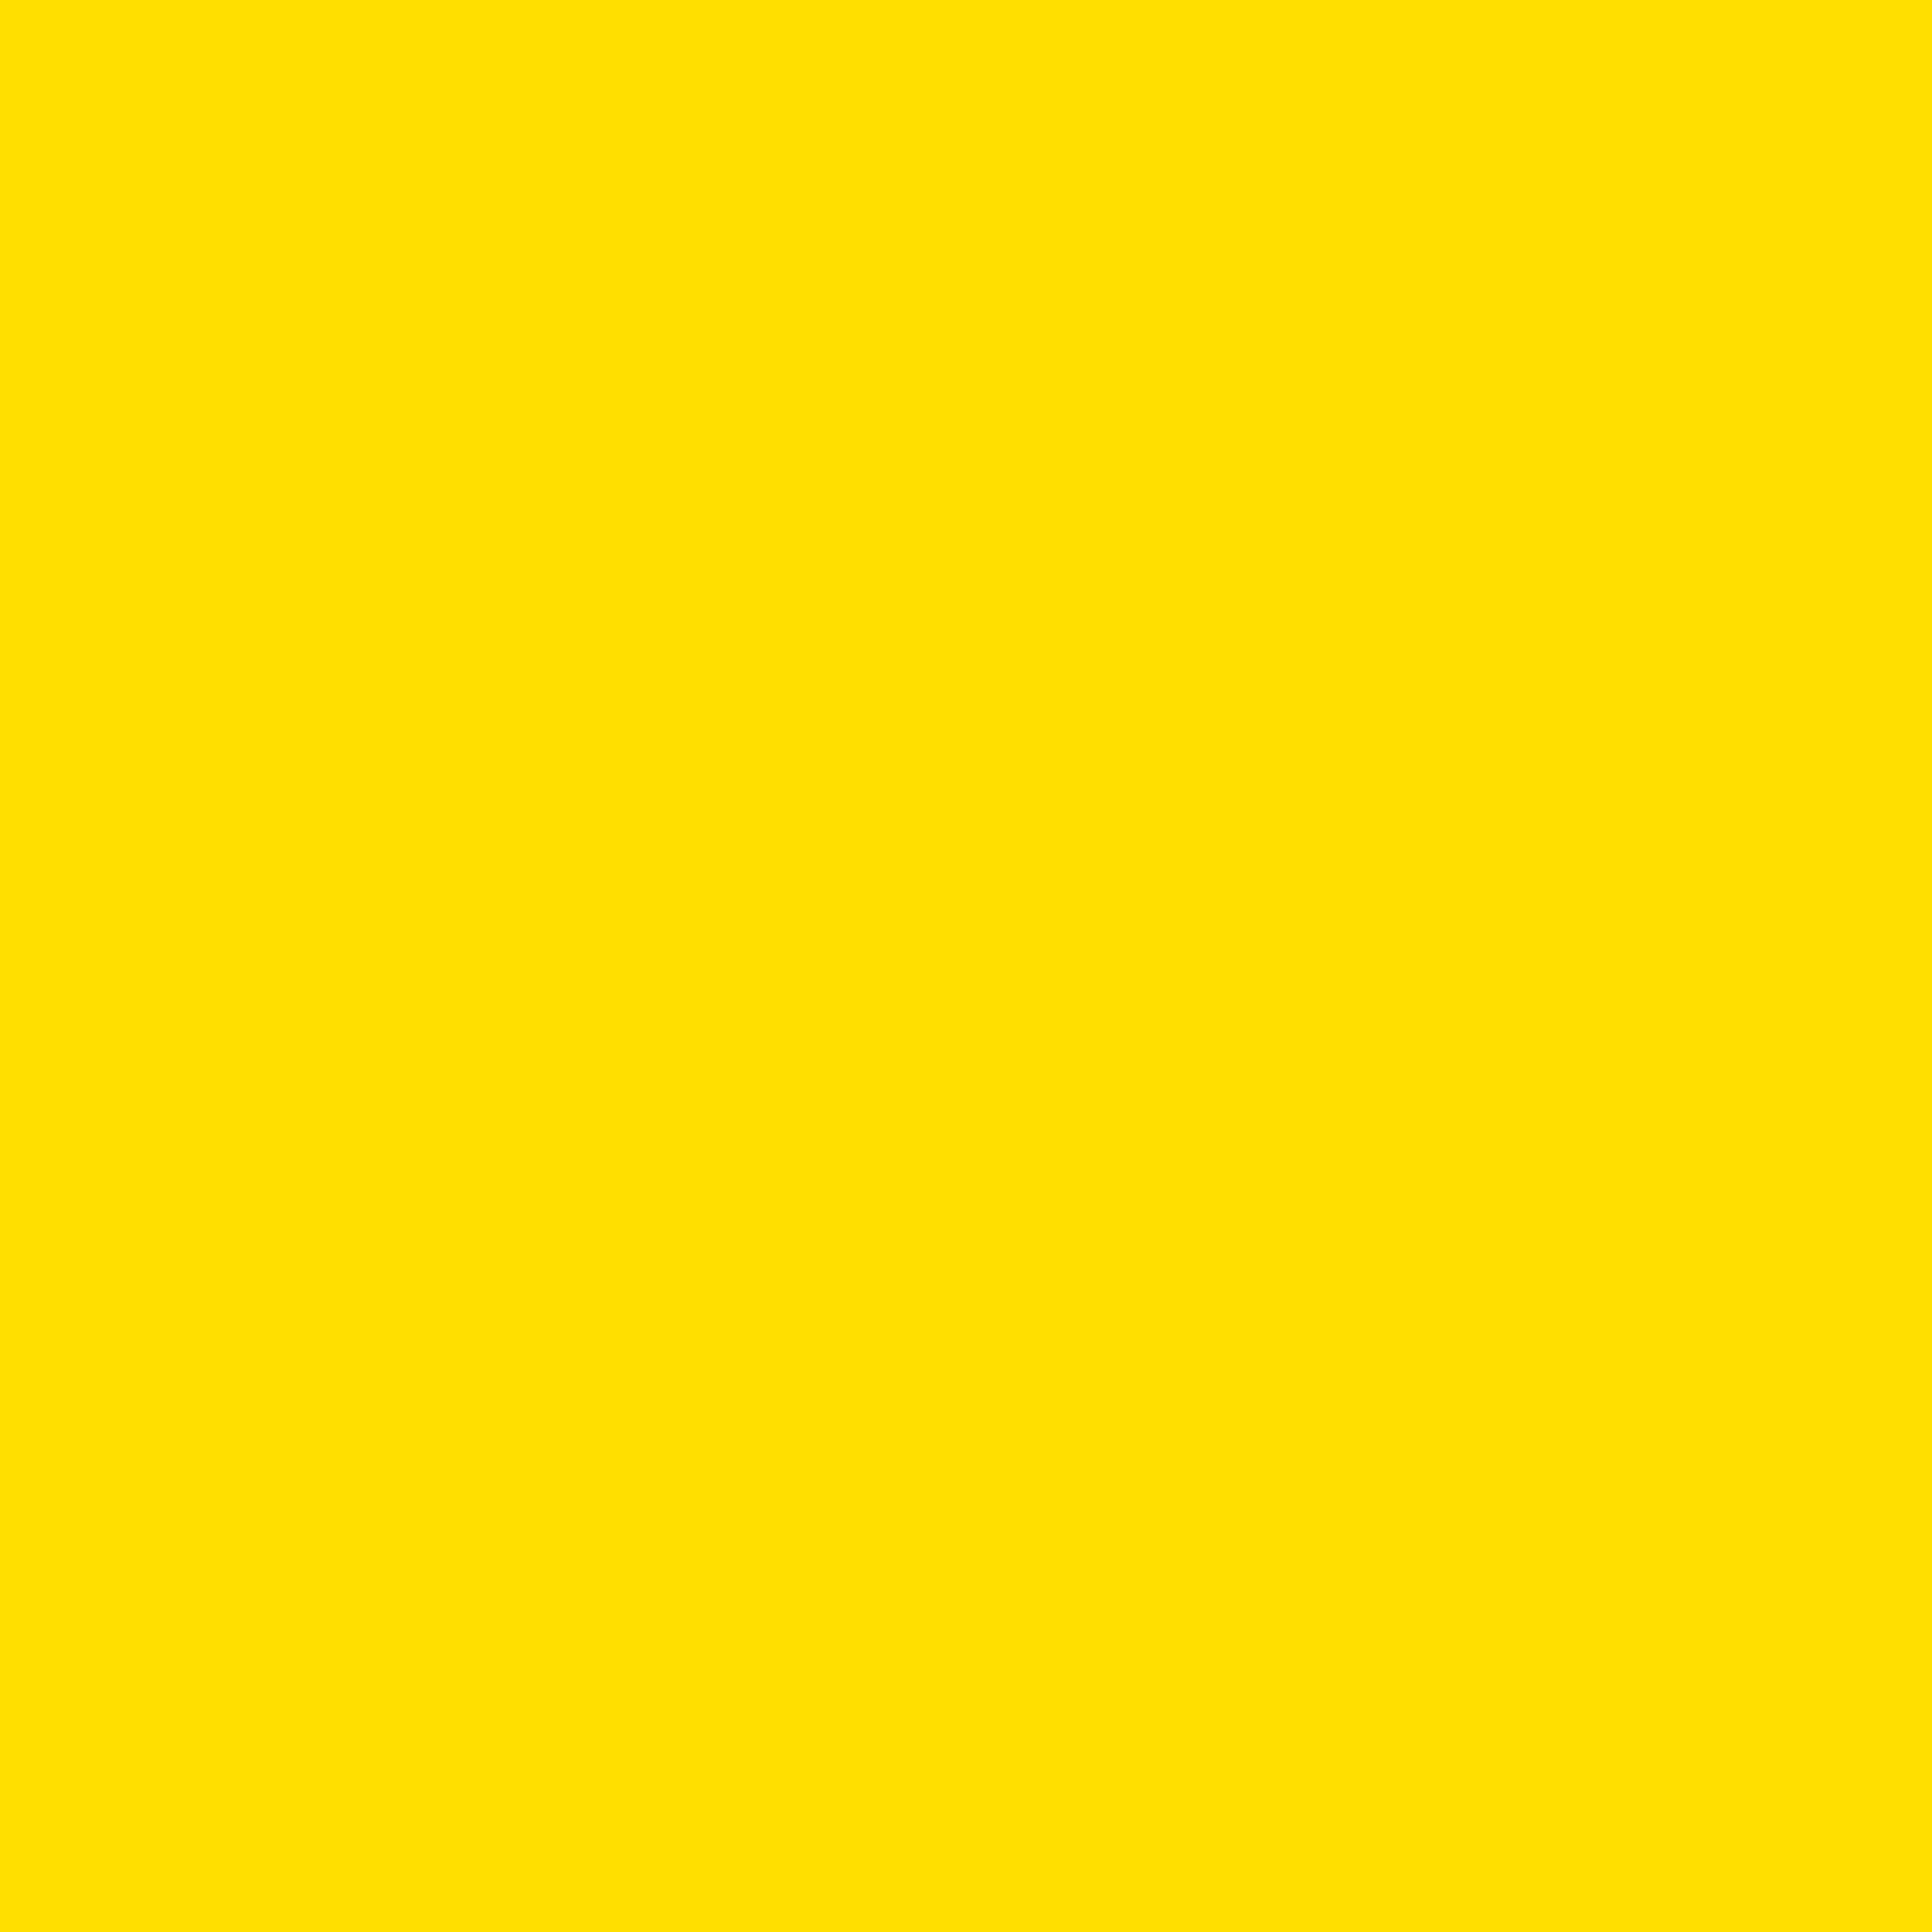 2048x2048 Yellow Pantone Solid Color Background